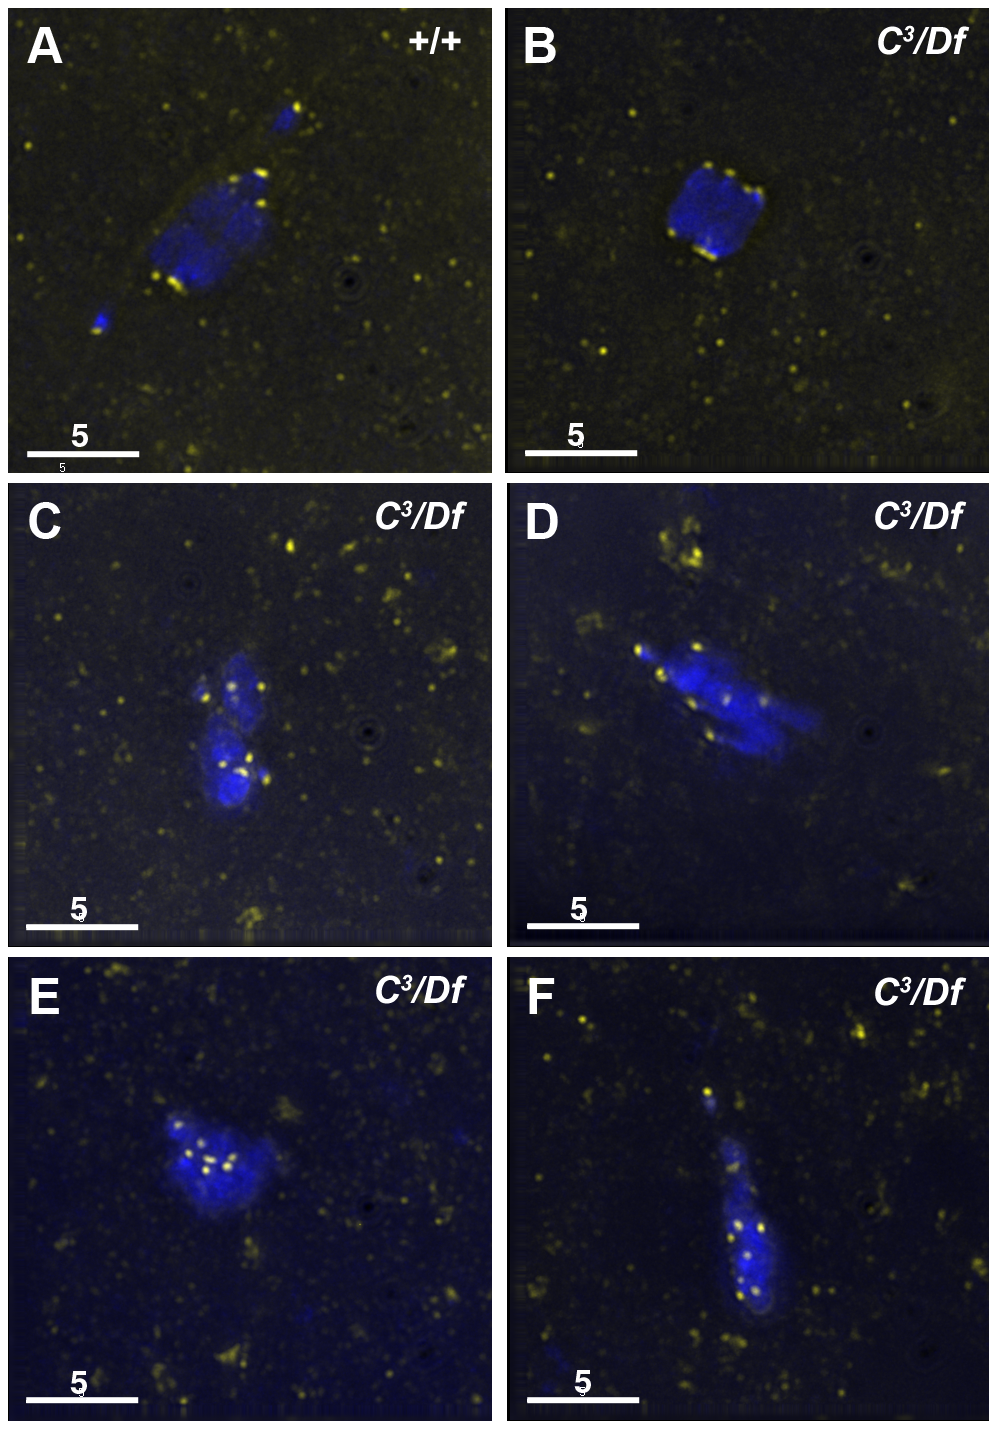 Kinetochores fail to properly biorient during prometaphase I in <i>γtub37C</i><sup>3</sup><i>/Df</i> mutant oocytes.